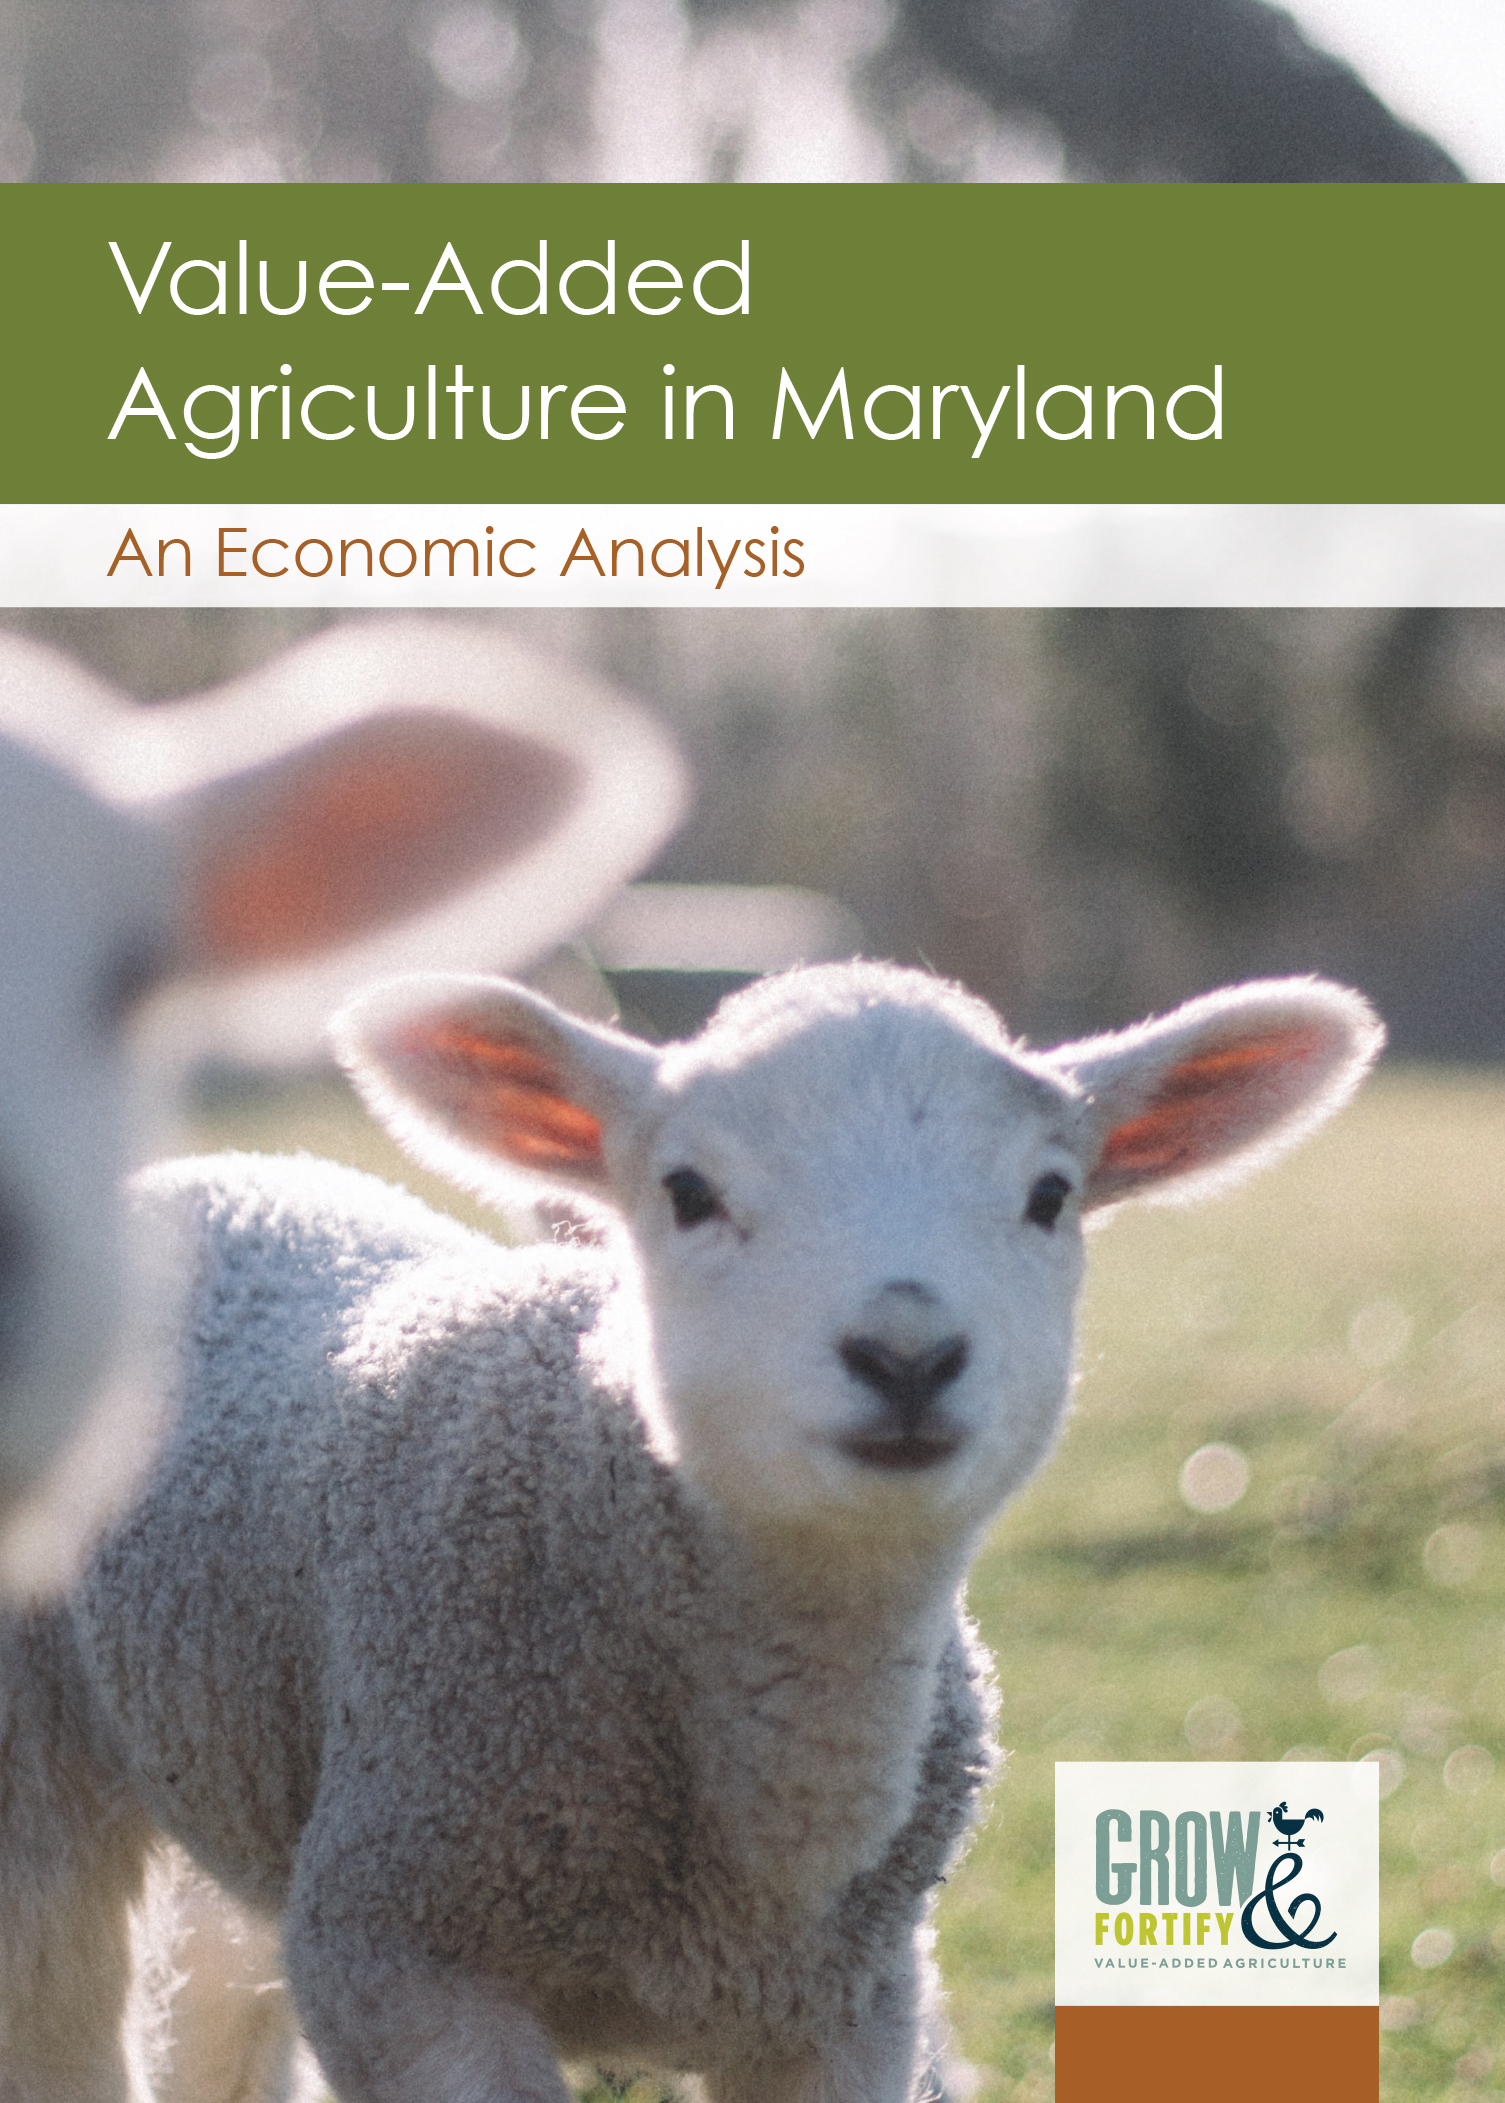 Grow & Fortify Releases Maryland Value-Added Agriculture Economic Analysis